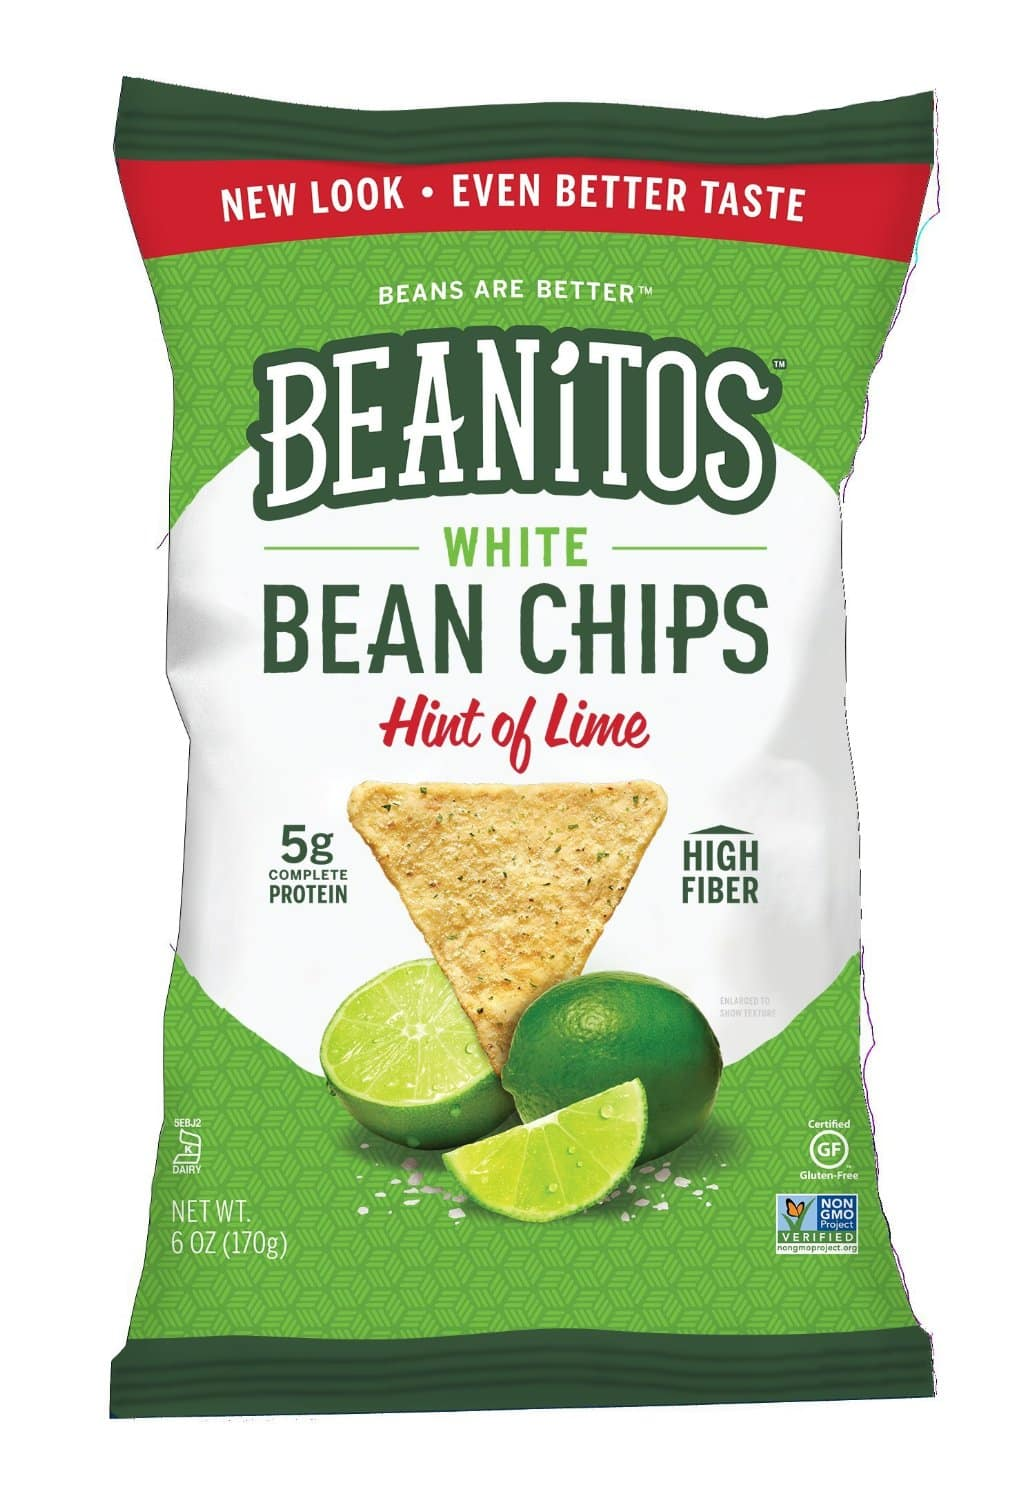 6-Pack 6oz Beanitos Chips (Restaurant Style White Bean and Sea Salt) $7.52 or less & more + free shipping